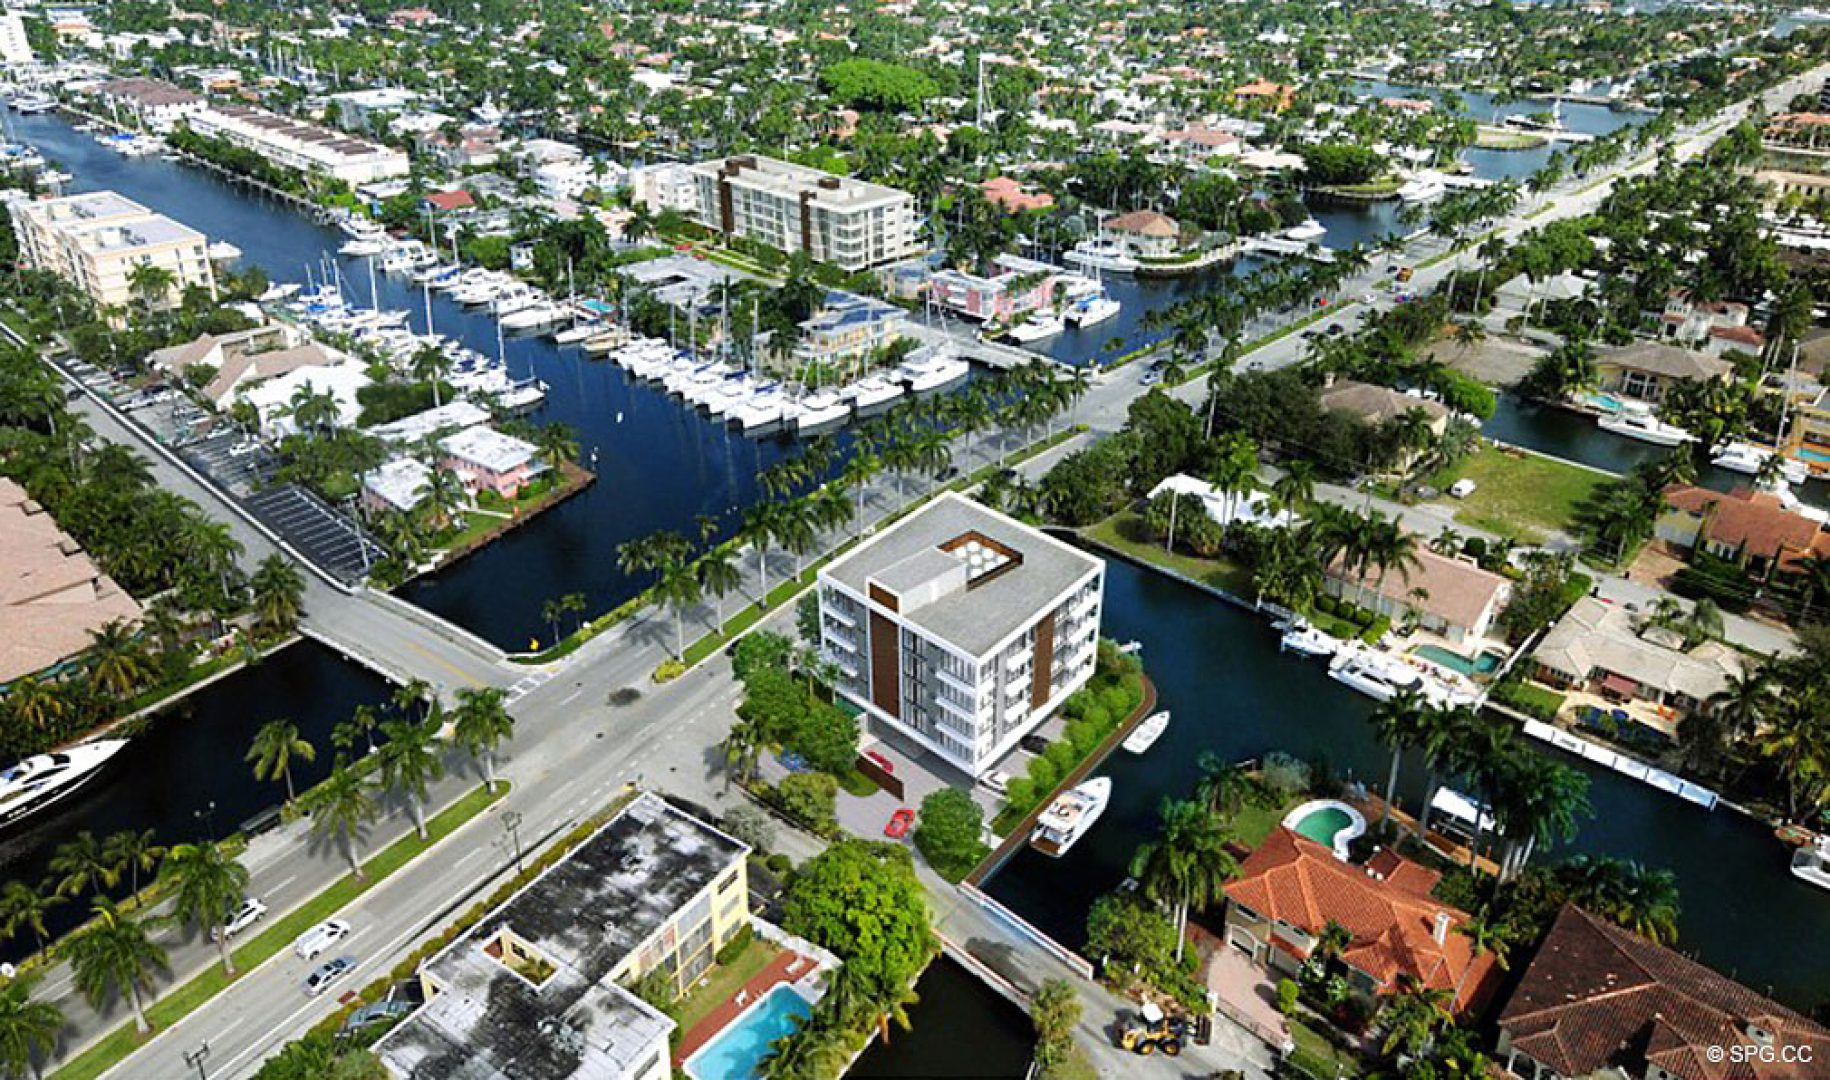 Expanded Aerial View of 1800 Las Olas, Luxury Waterfront Condos in Fort Lauderdale, Florida 33301